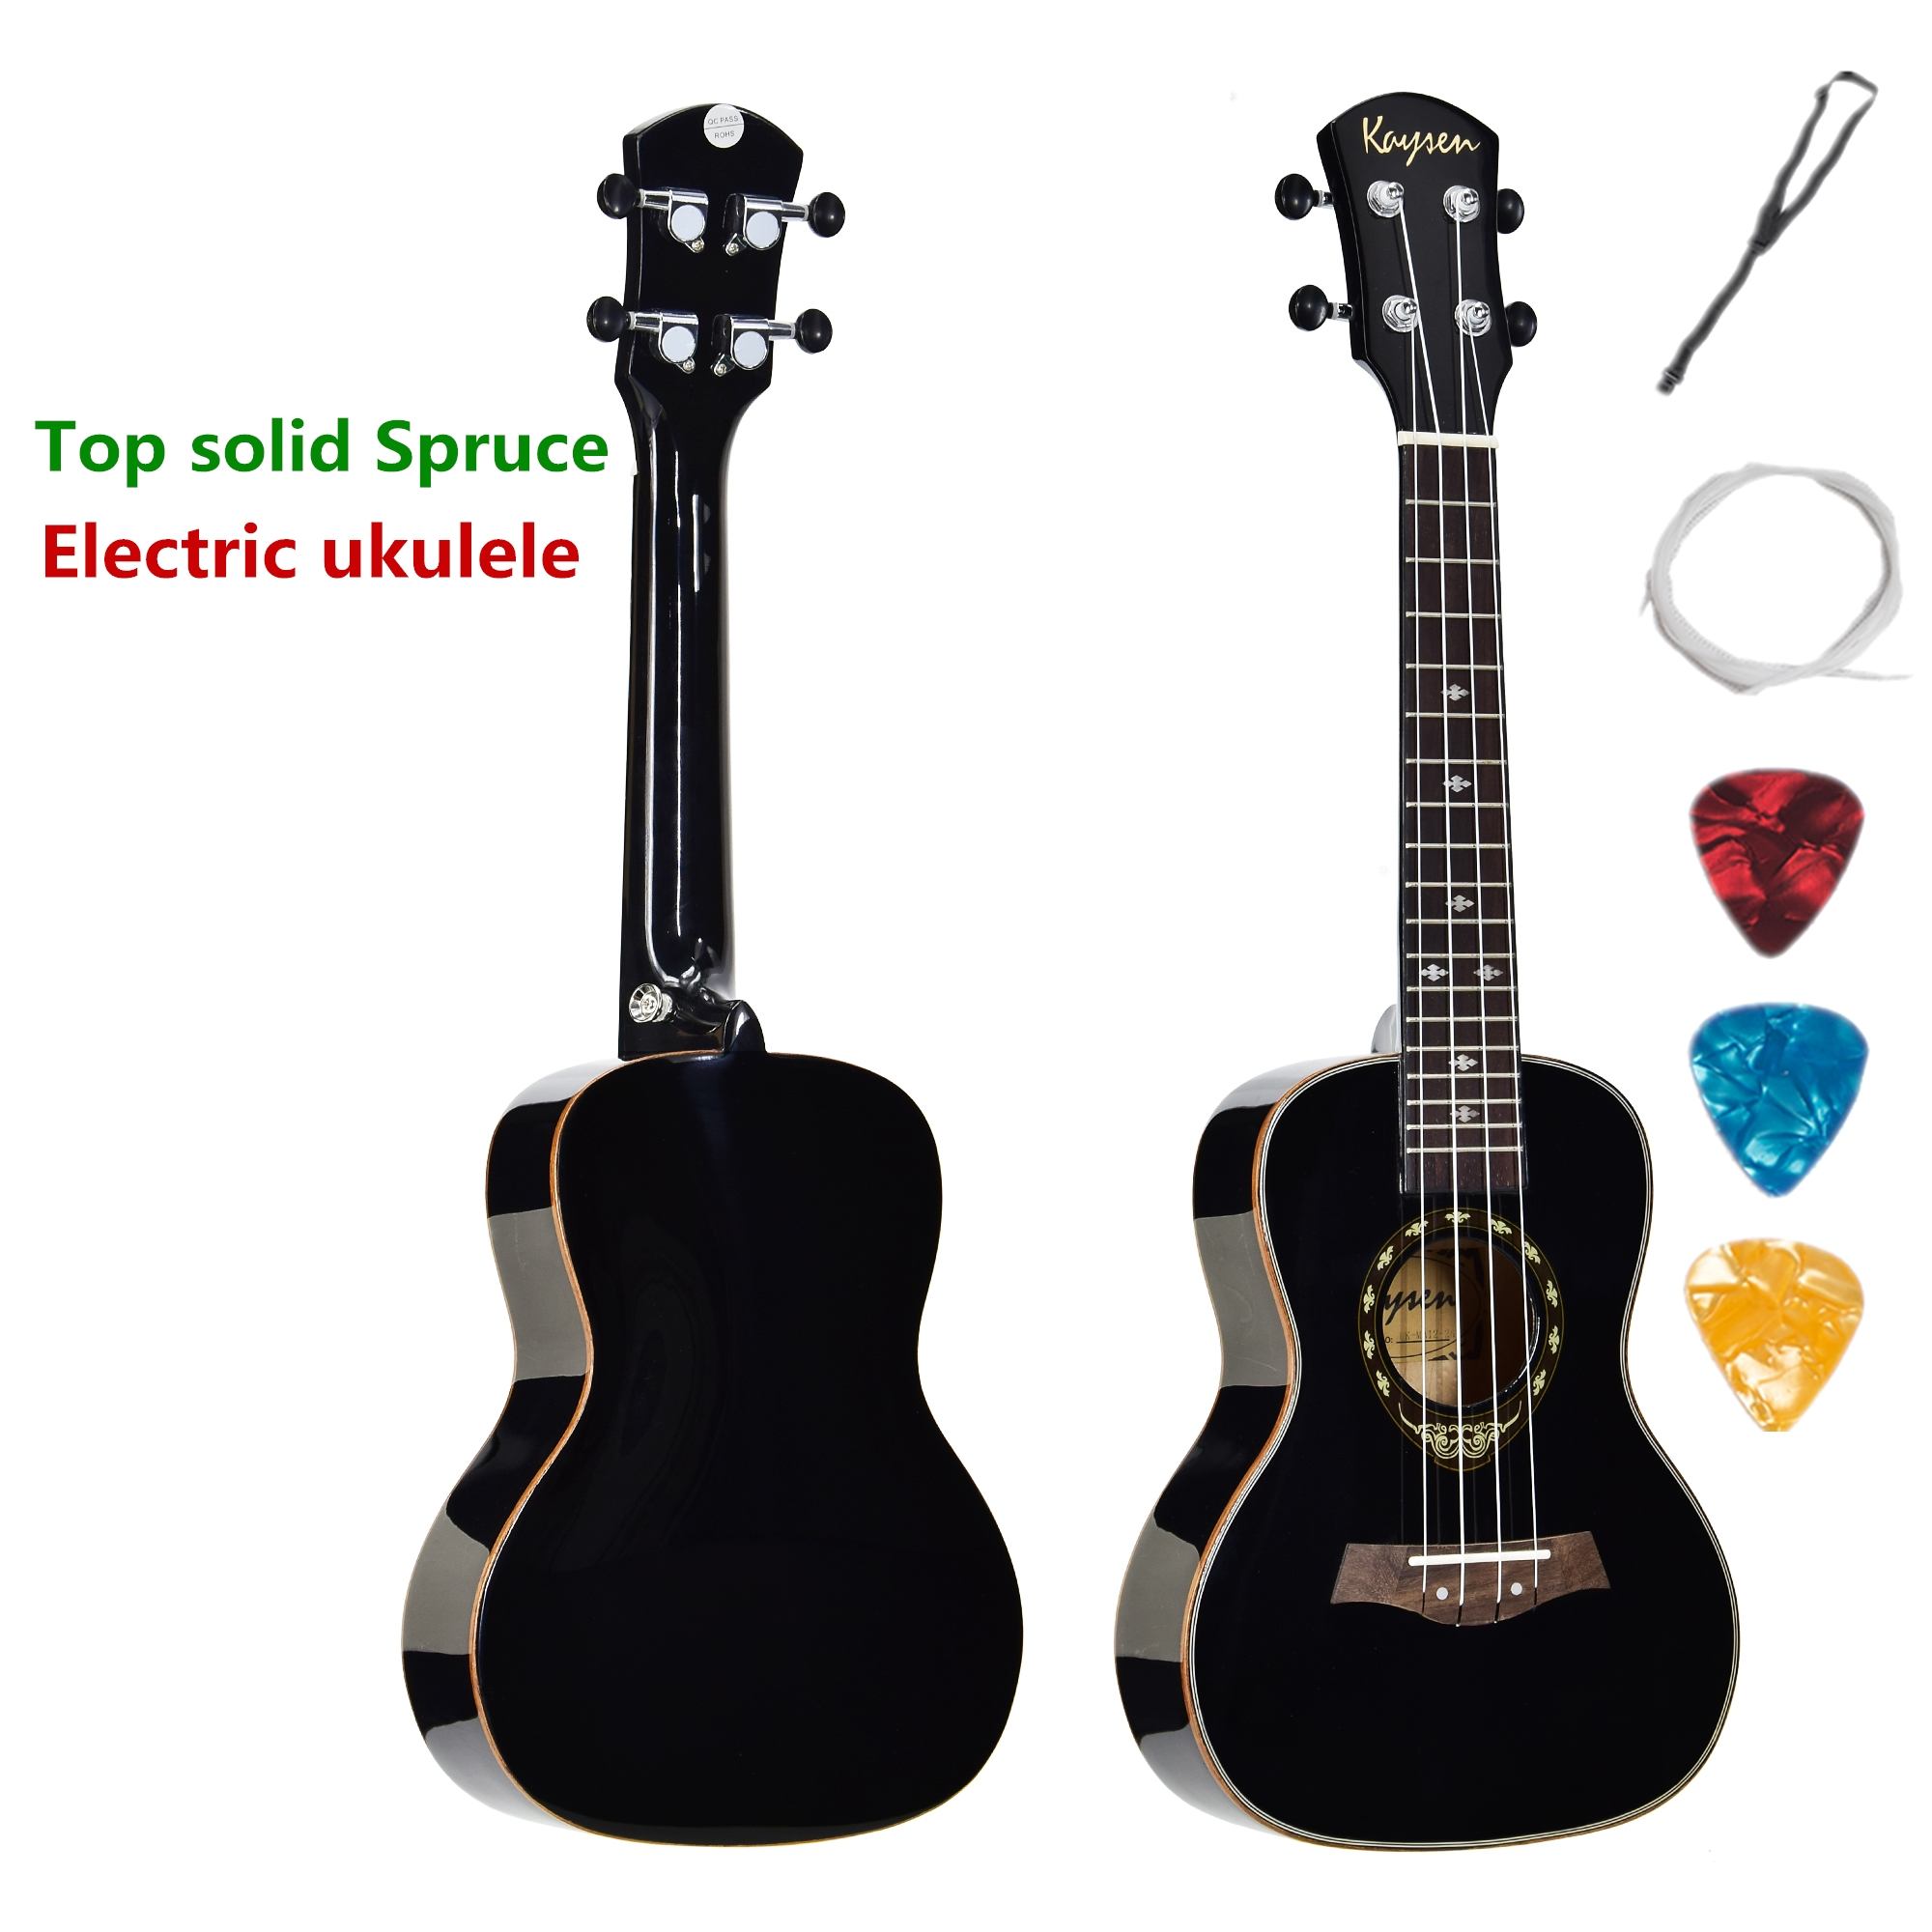 Acoustic Electric Ukulele Top Solid Concert 24 Inch Guitar Ukelele Spruce Highgloss Black 4 Strings Guitarra Pick UP Uke LightAcoustic Electric Ukulele Top Solid Concert 24 Inch Guitar Ukelele Spruce Highgloss Black 4 Strings Guitarra Pick UP Uke Light